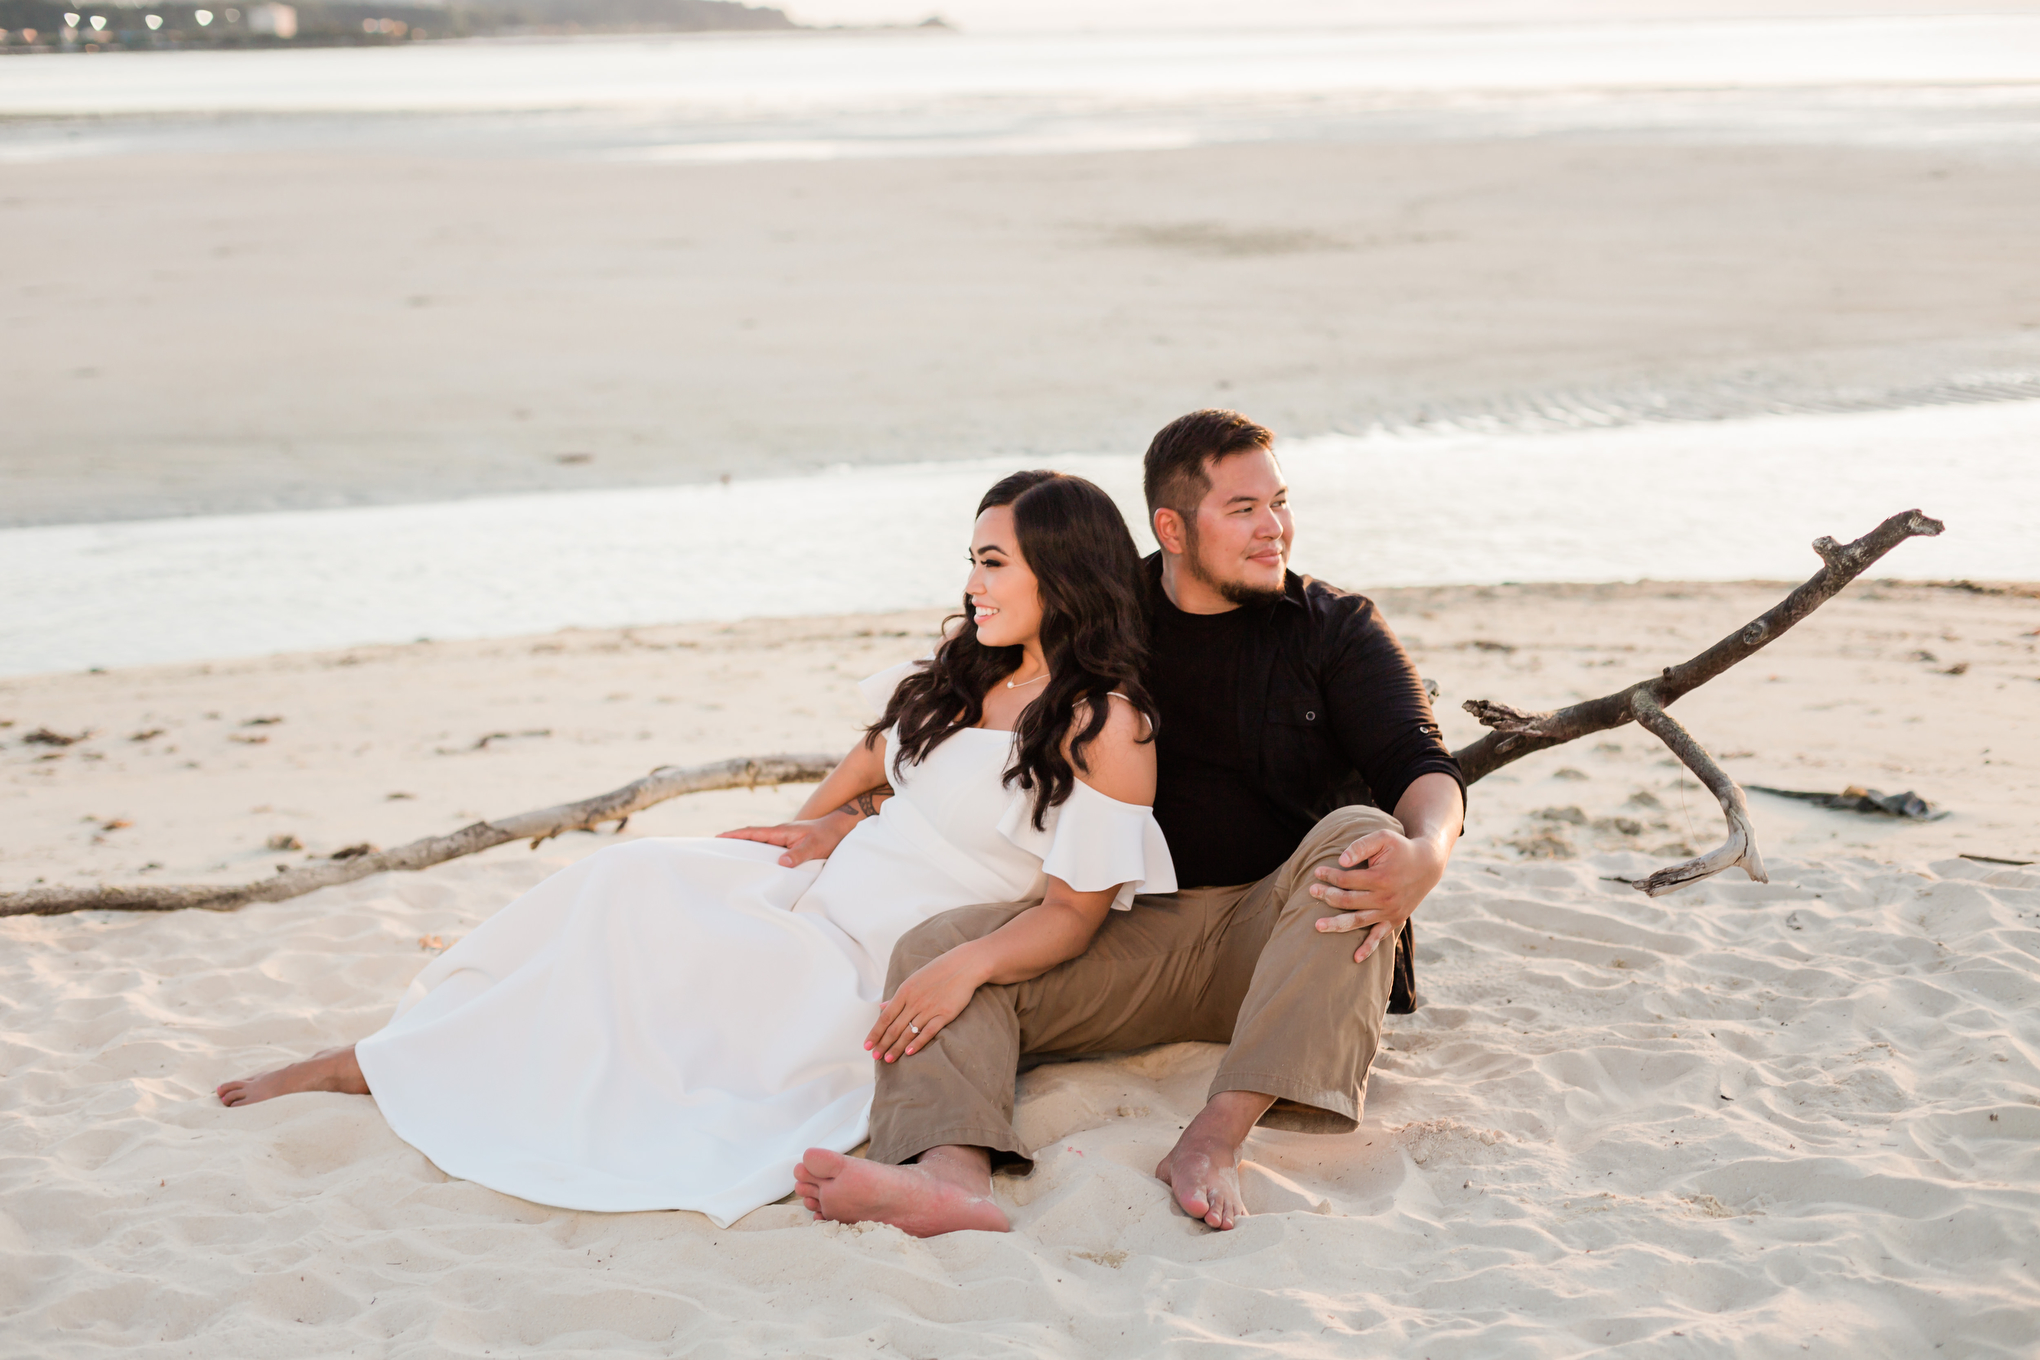 21PIXELS_Guam_Engagement_Photographer220.JPG